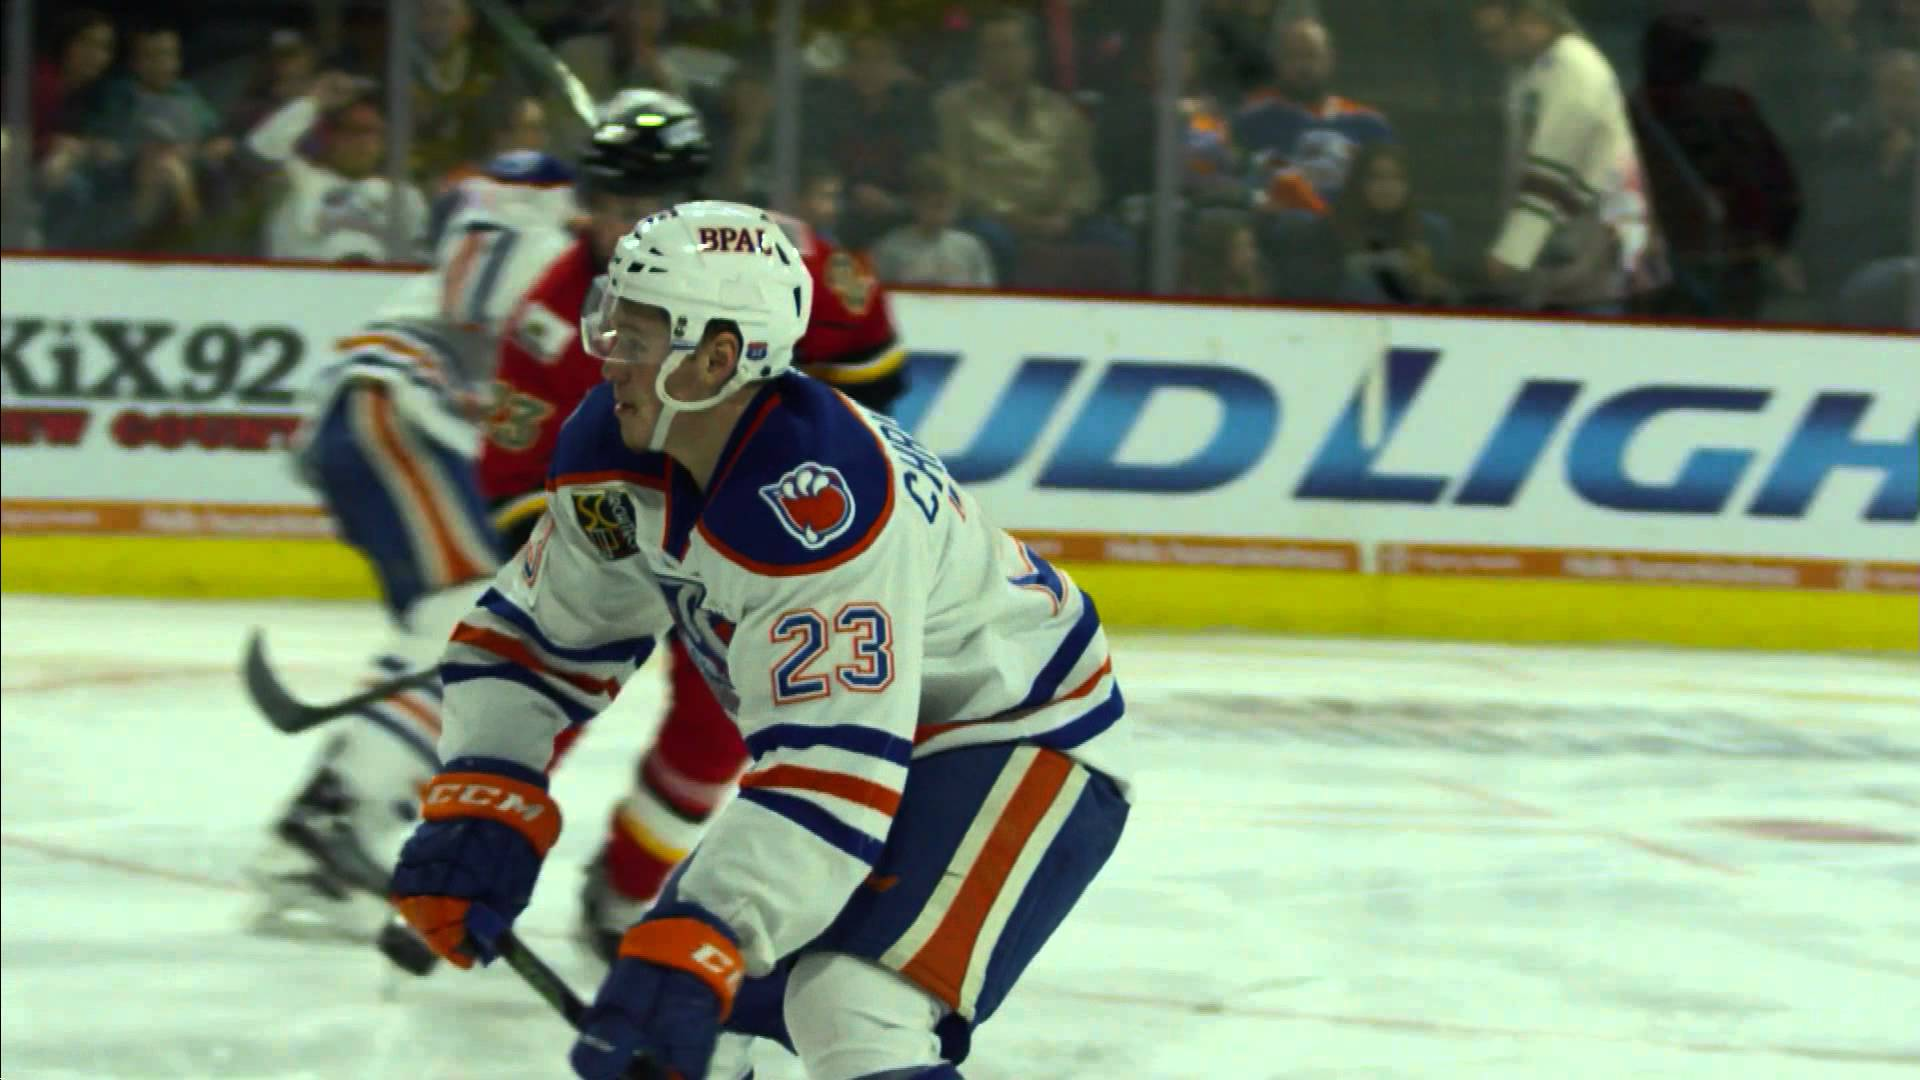 Bakersfield Condors promote home opener experience package